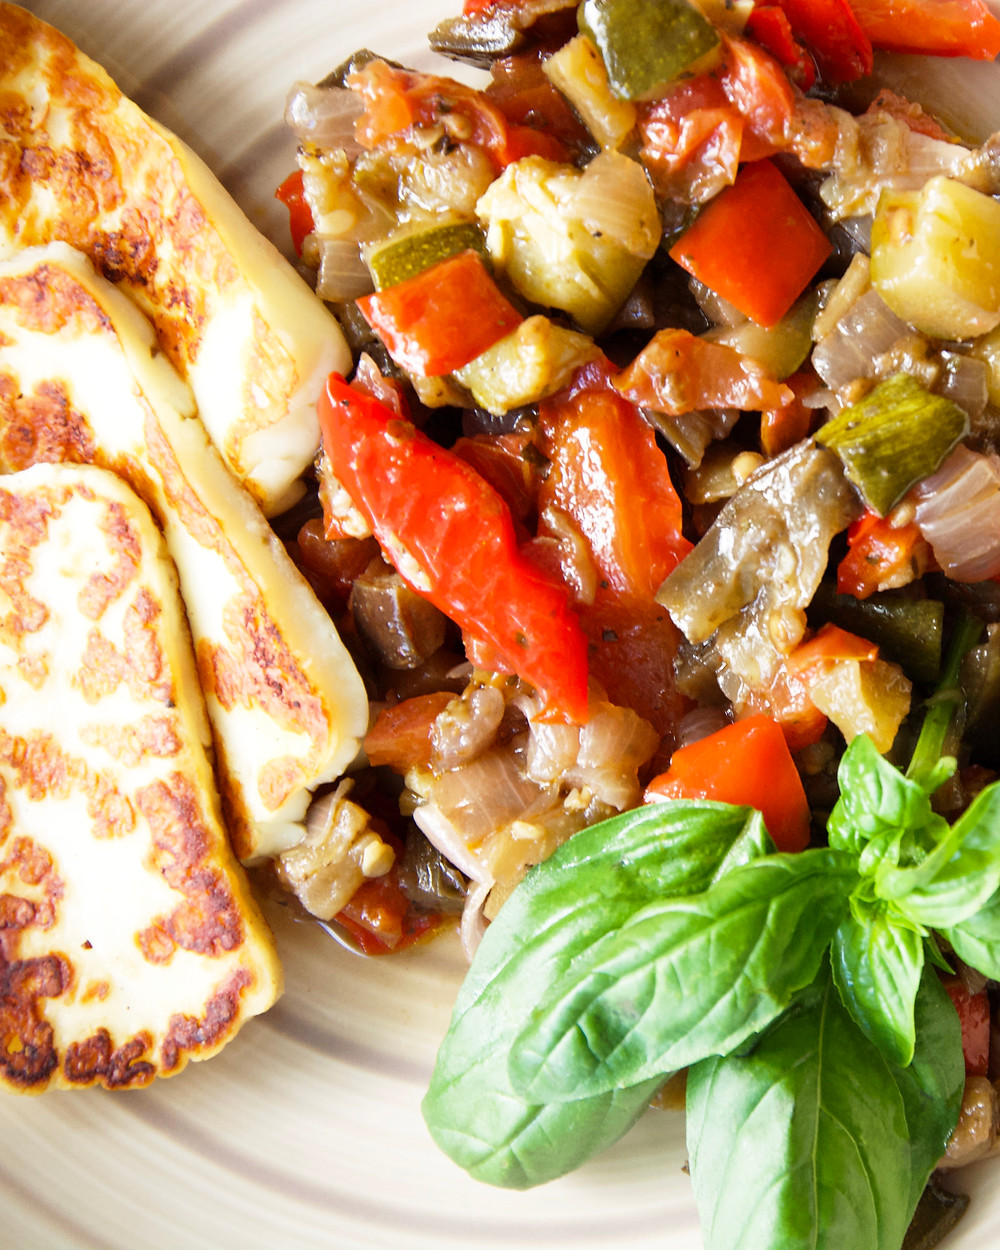 The final product. Oven Baked Ratatouille with a side of griddled halloumi cheese.